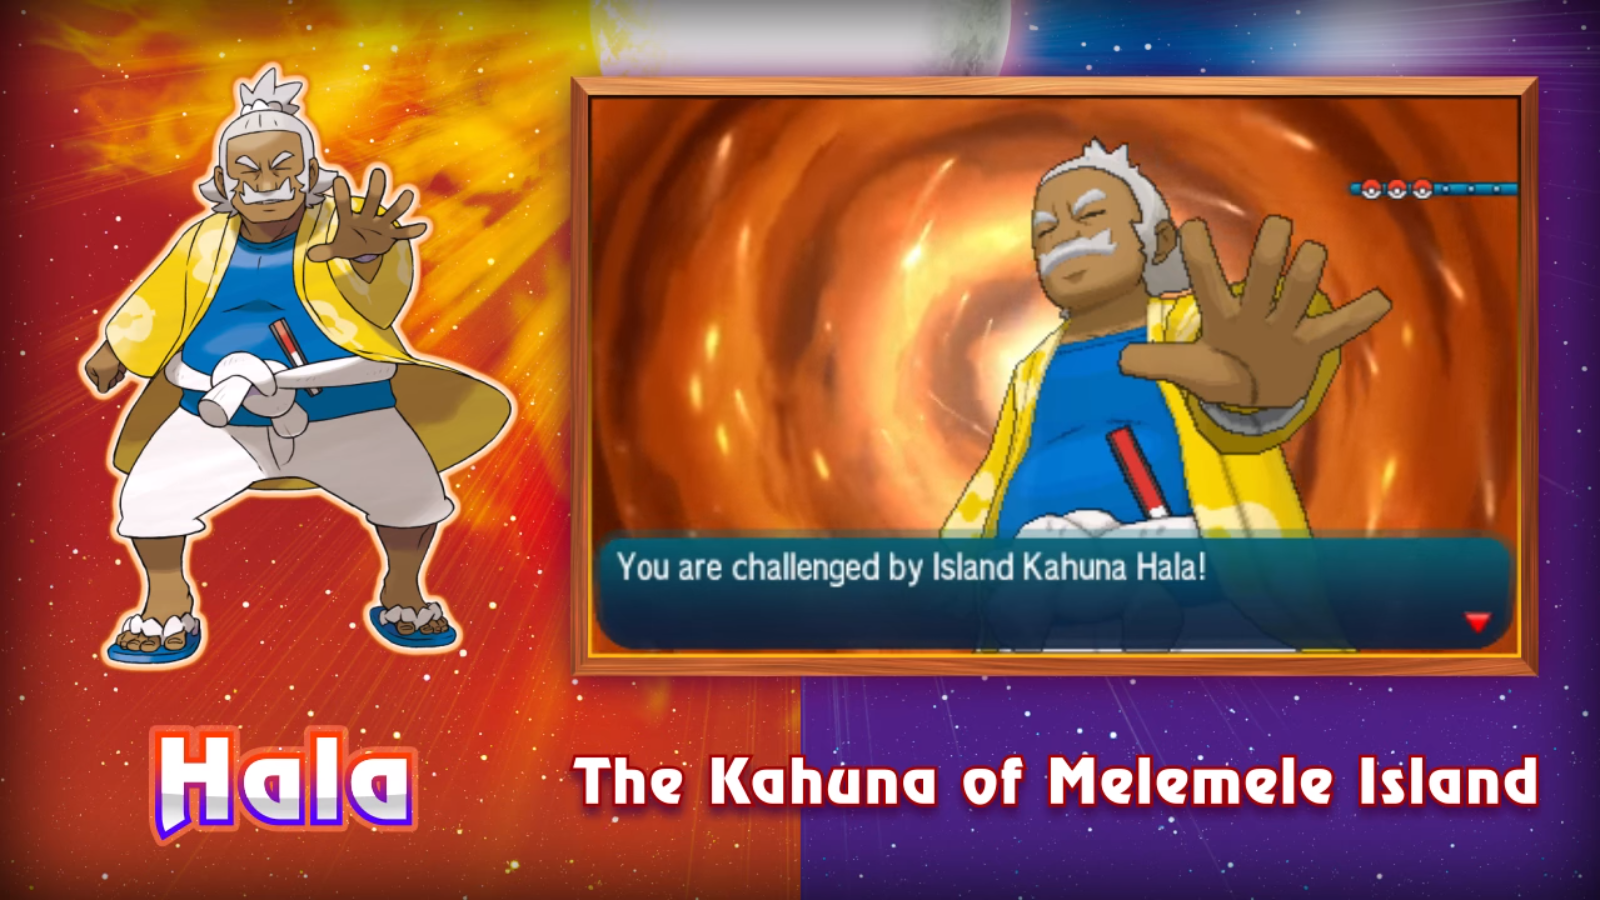 Island Kahuna Hala | Pokémon | Know Your Meme